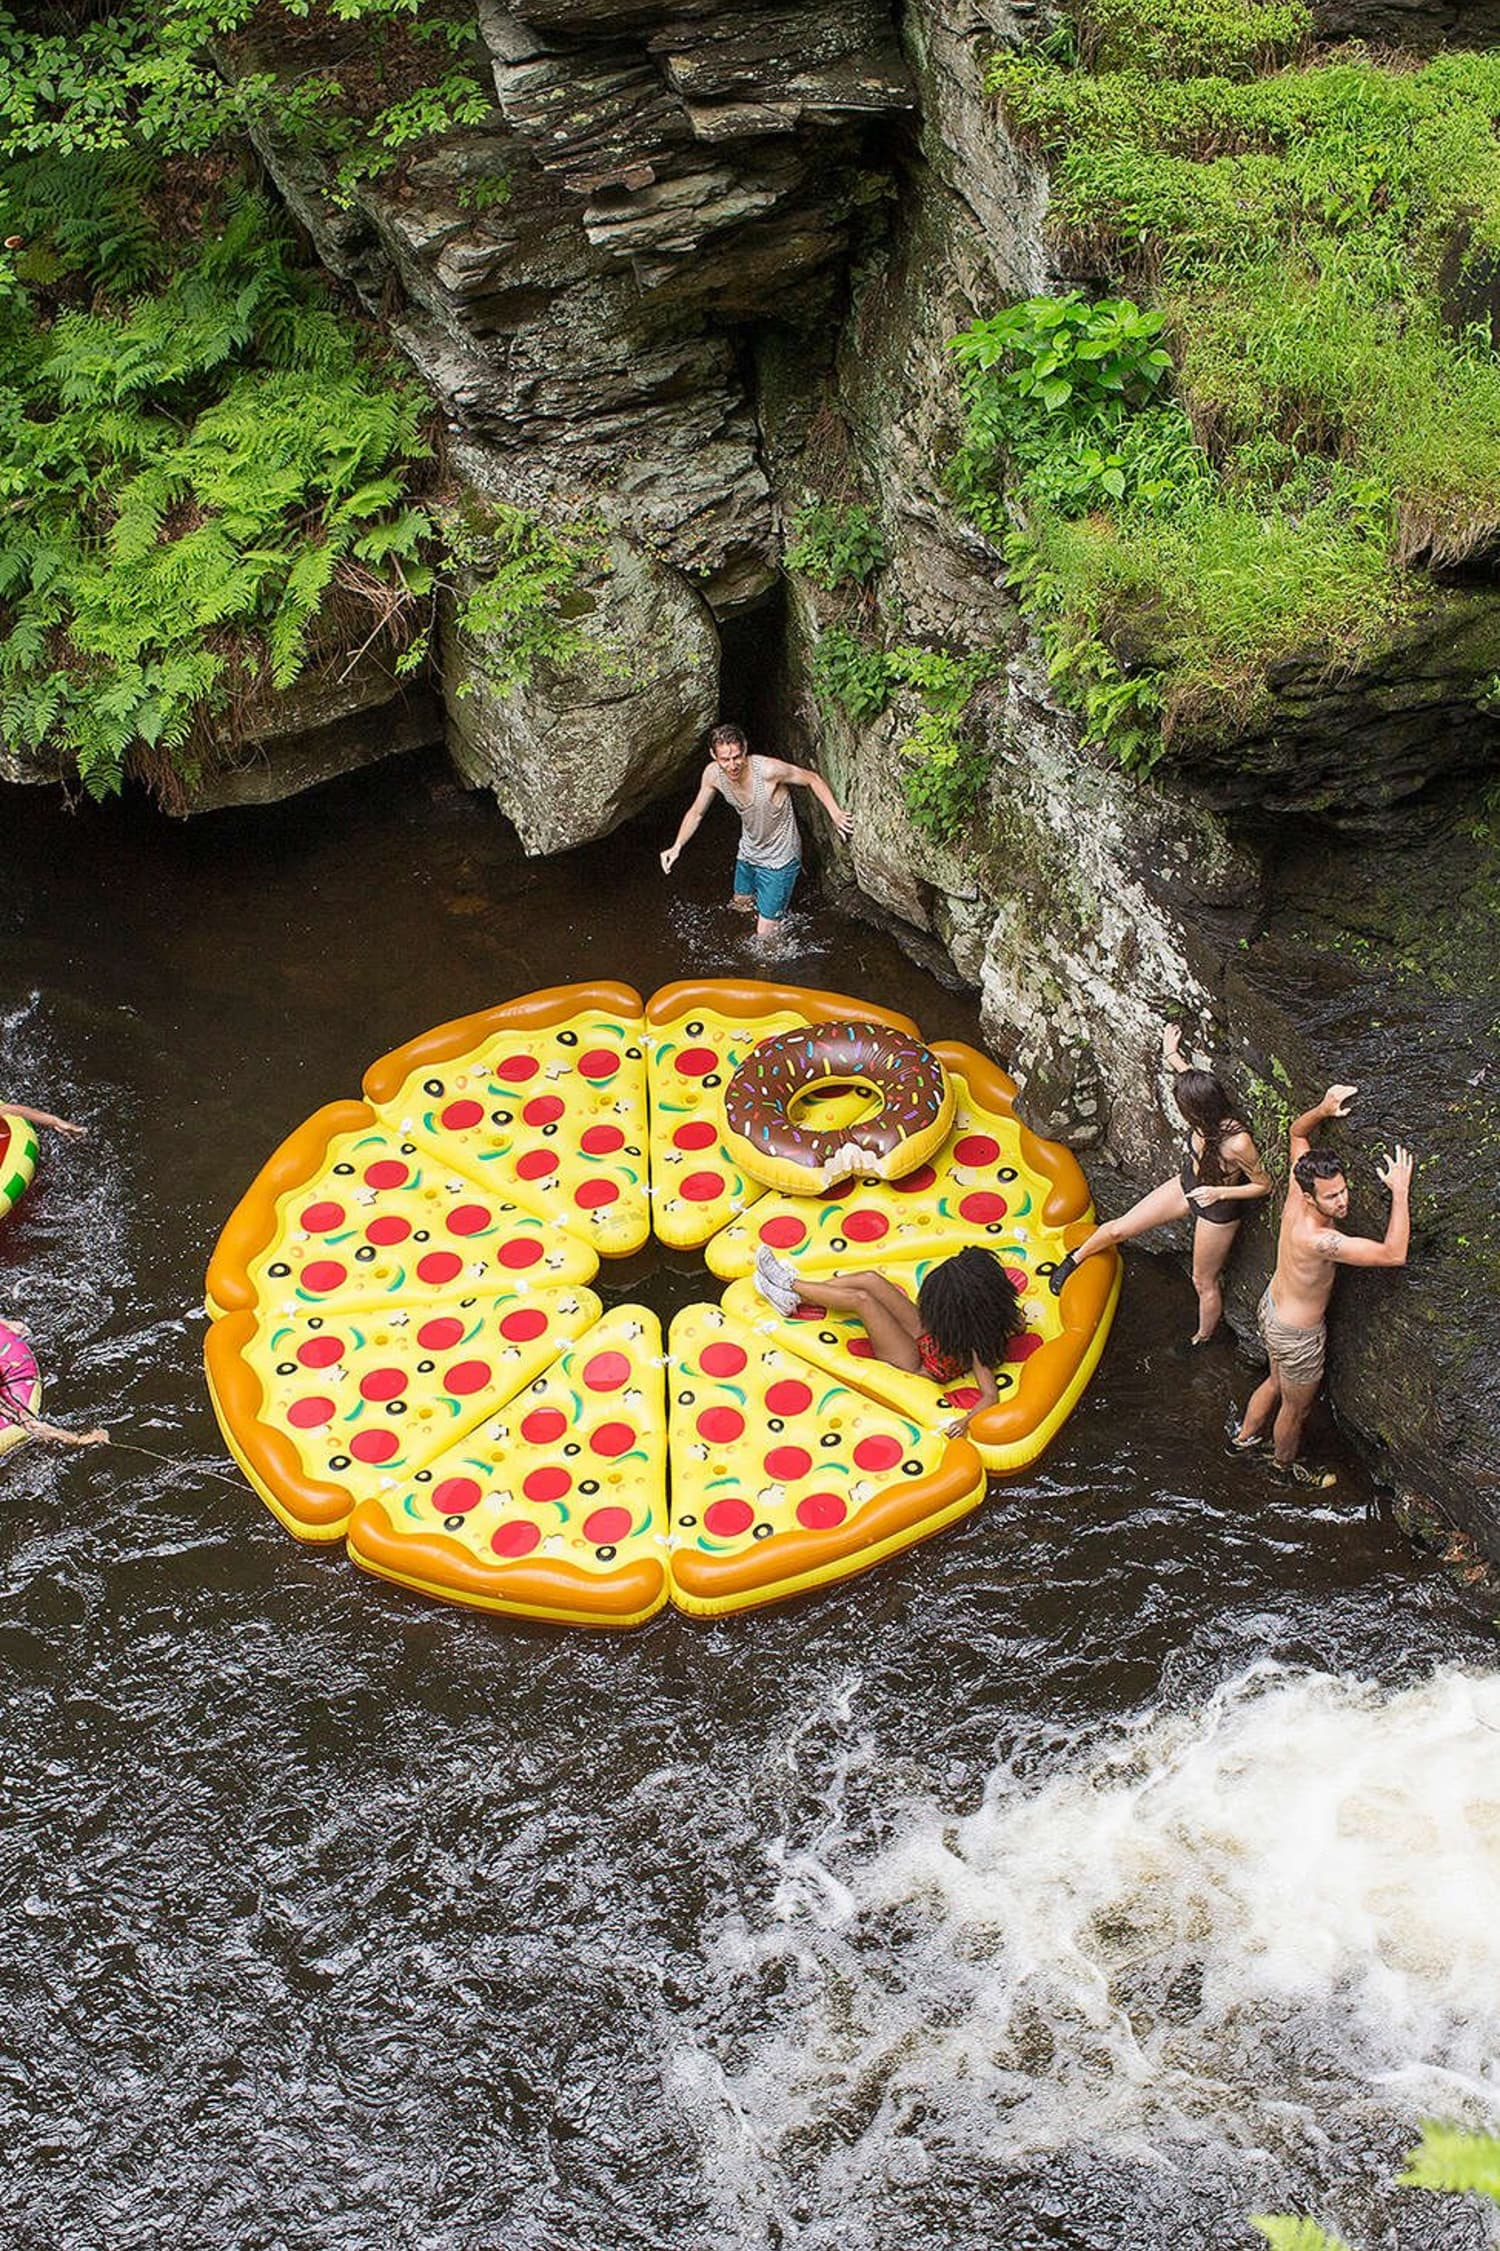 The Best Giant Pool Floats Apartment Therapy